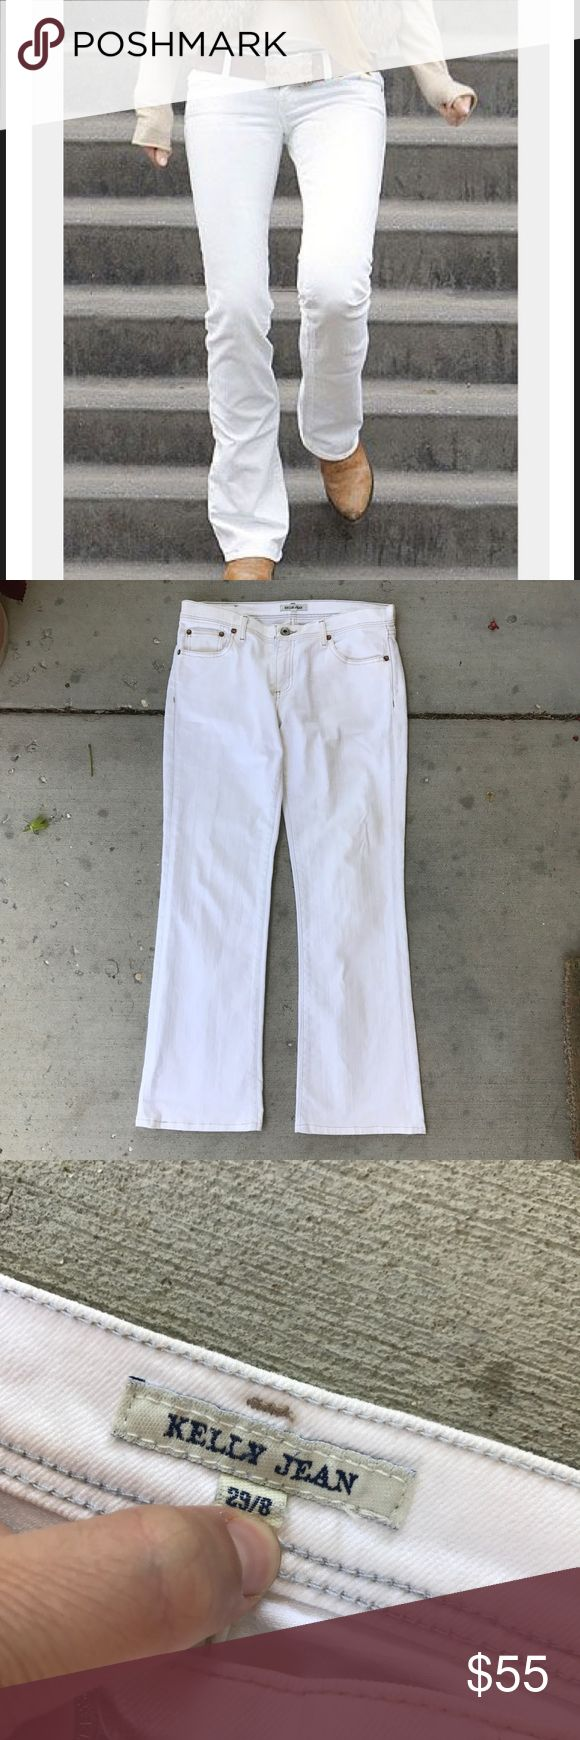 "Polo Ralph Lauren White Bootcut Jeans Size 29 (8) Crisp white mid rise boot cut jeans by Ralph Lauren Polo Jean Co. Size 8 (29), inseam is 32"". In excellent condition!! Cute for Summer or Fall! Ralph Lauren Jeans Boot Cut"